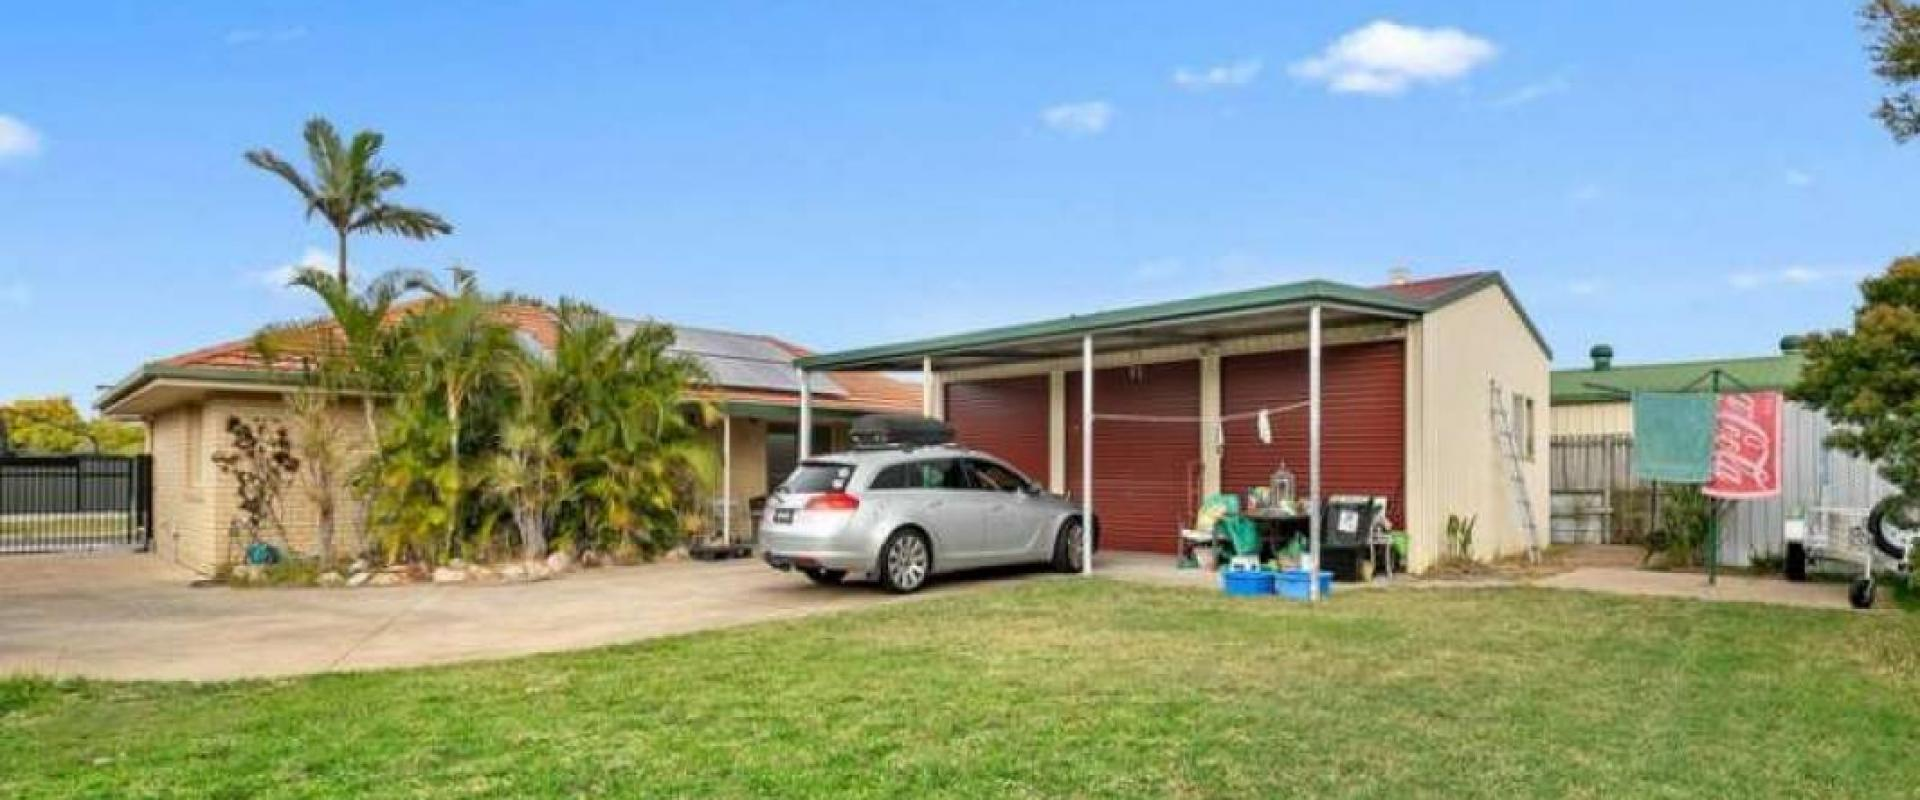 INVEST - THE SELLER IS STAYING IN THE PROPERTY UNTIL FRIDAY 01st JANUARY, 2021 AND WILL PAY $380.00 PER WEEK RENT TO THE BUYER.